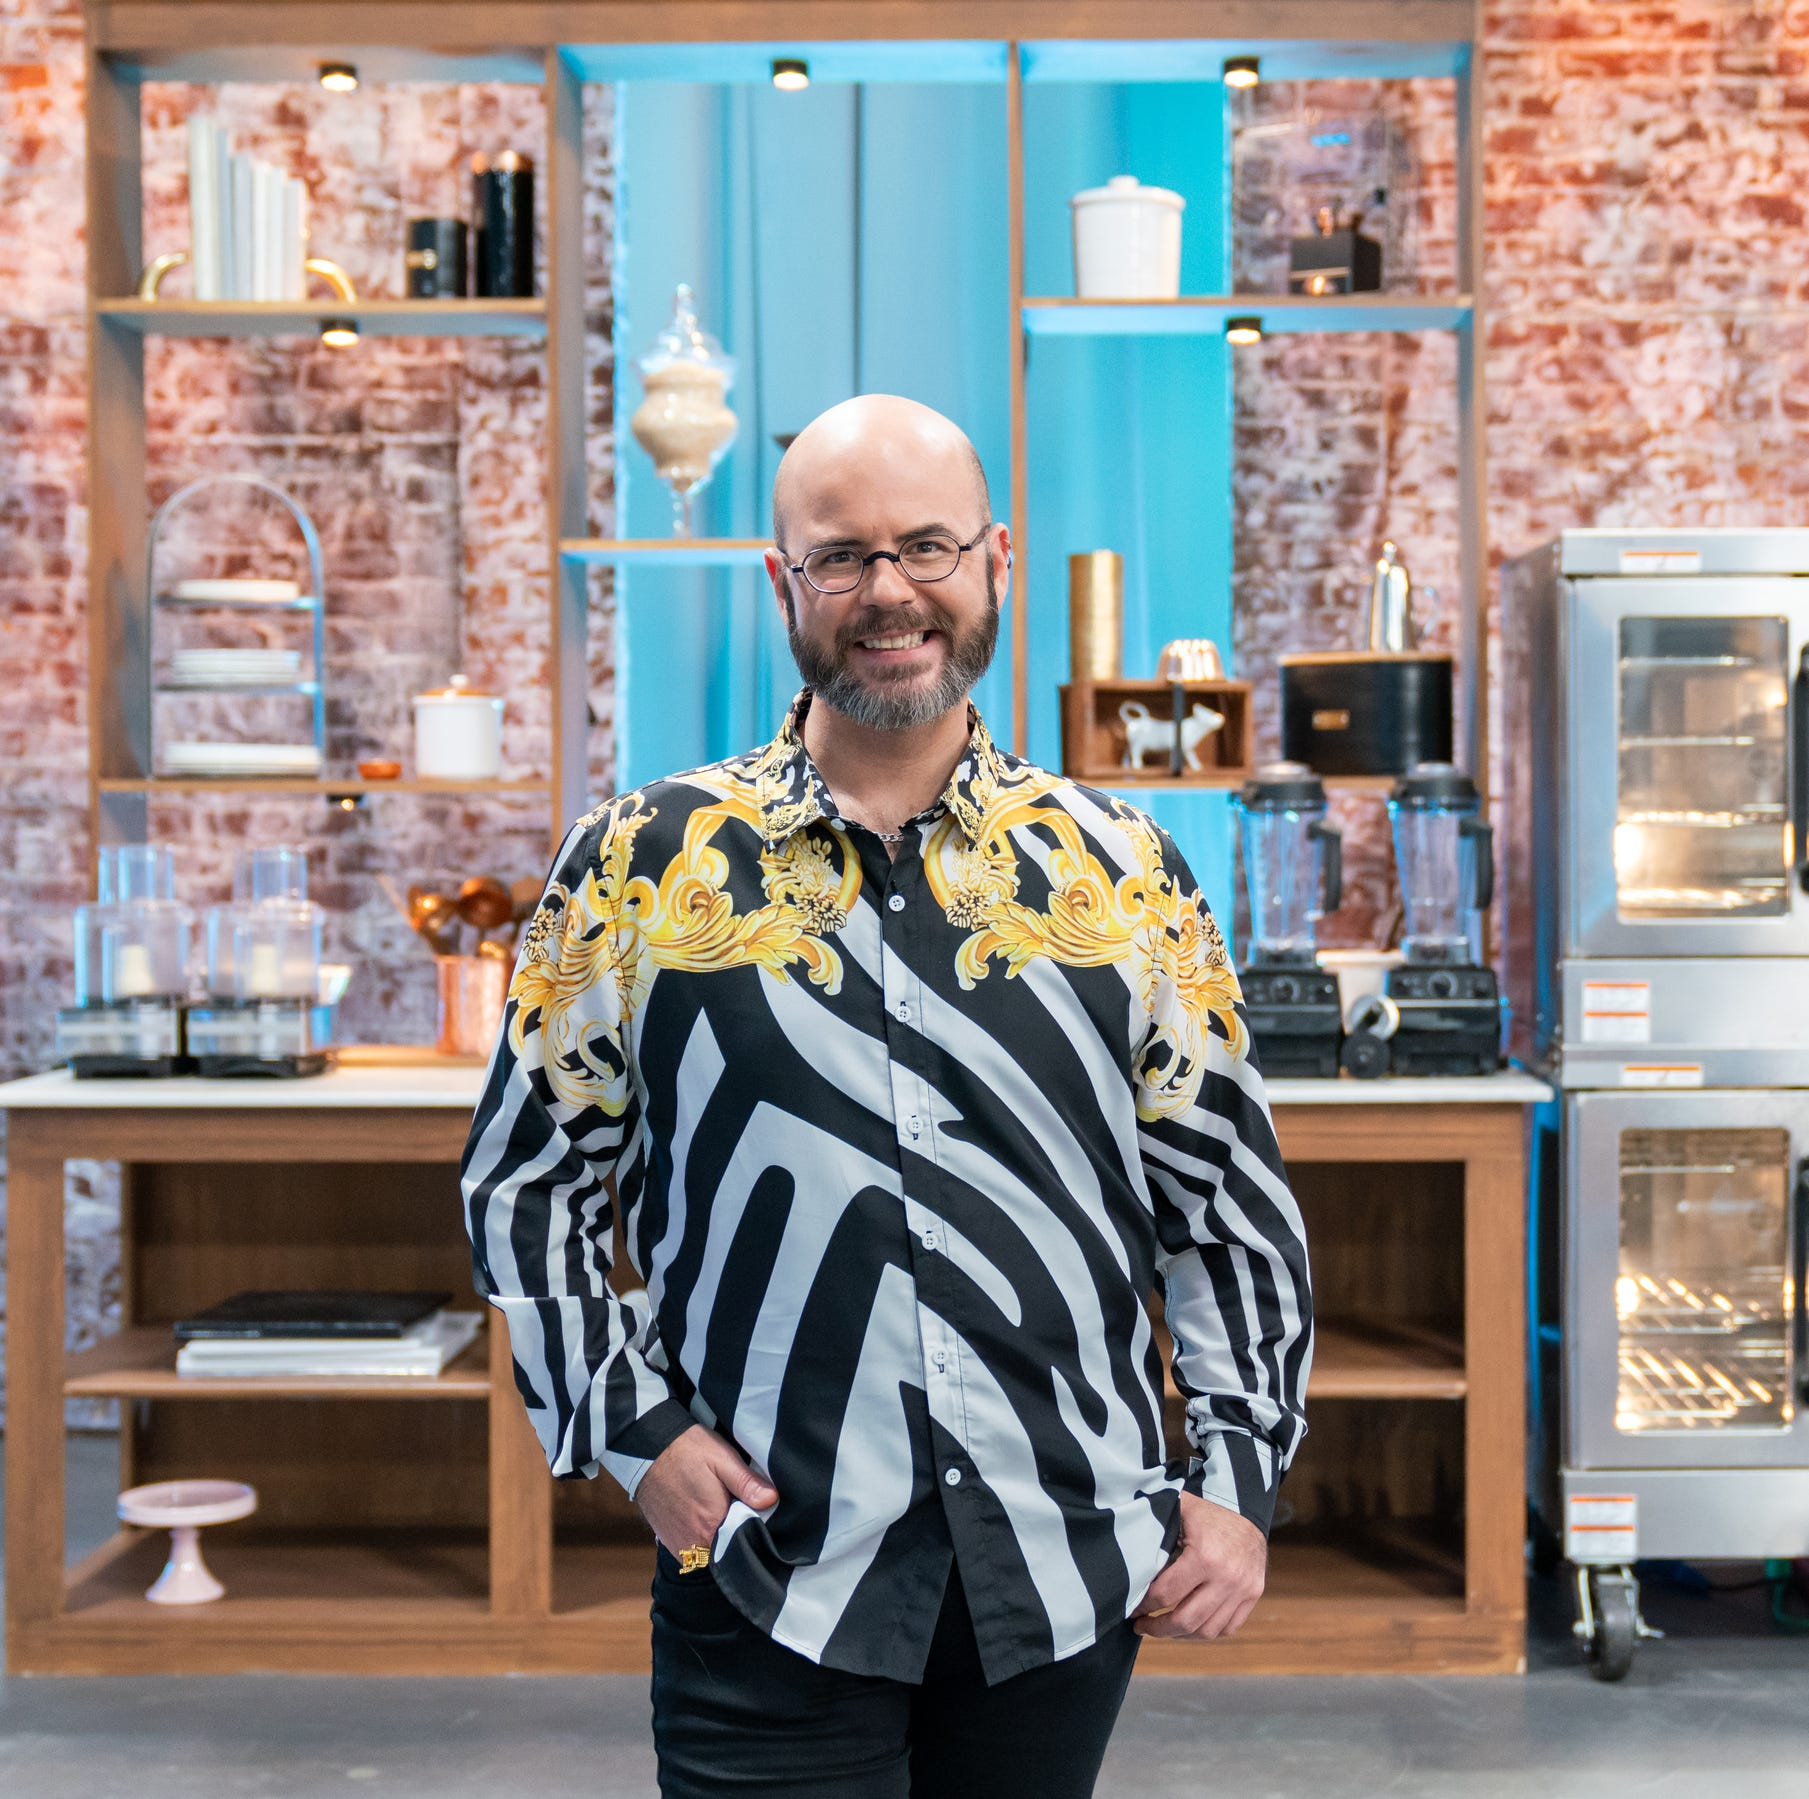 With a new Food Network show, Kentucky's favorite baker Jason Smith is busy these days